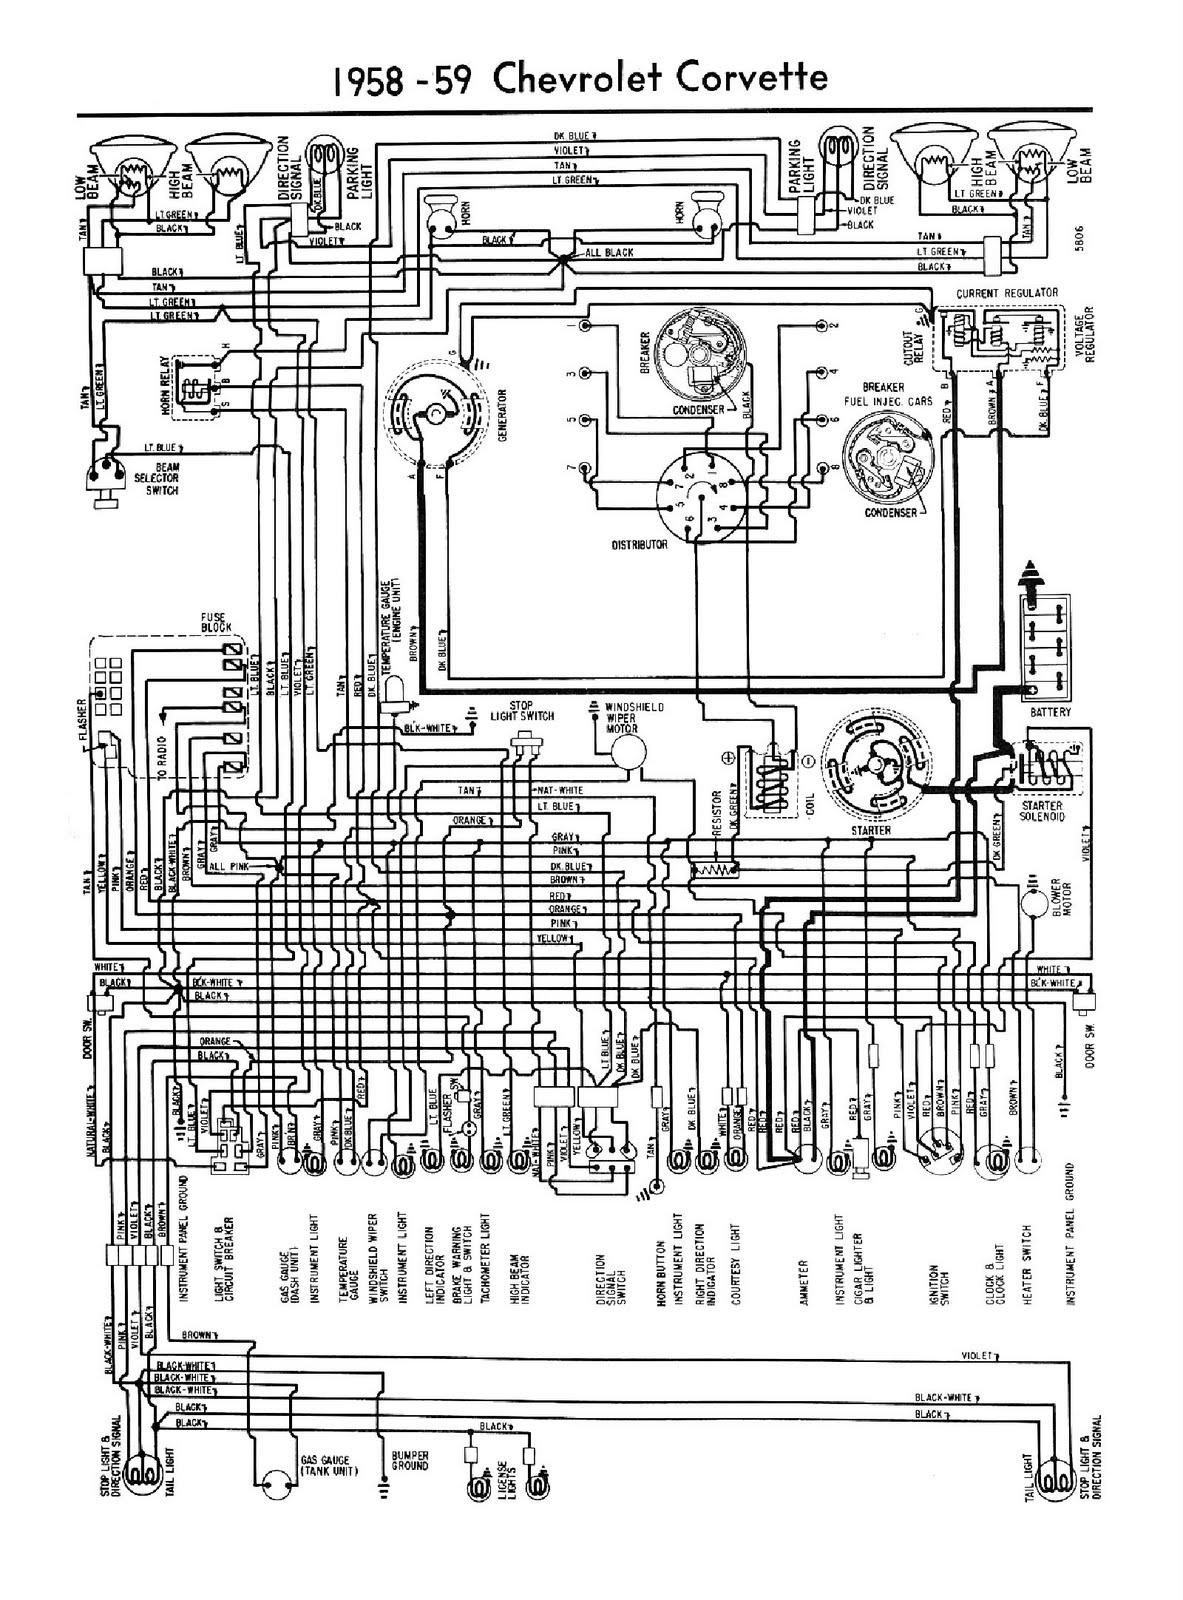 88 Chevy Suburban Gauge Wire Diagram Wiring Will Be A Thing K10 Get Free Image About 2000 91